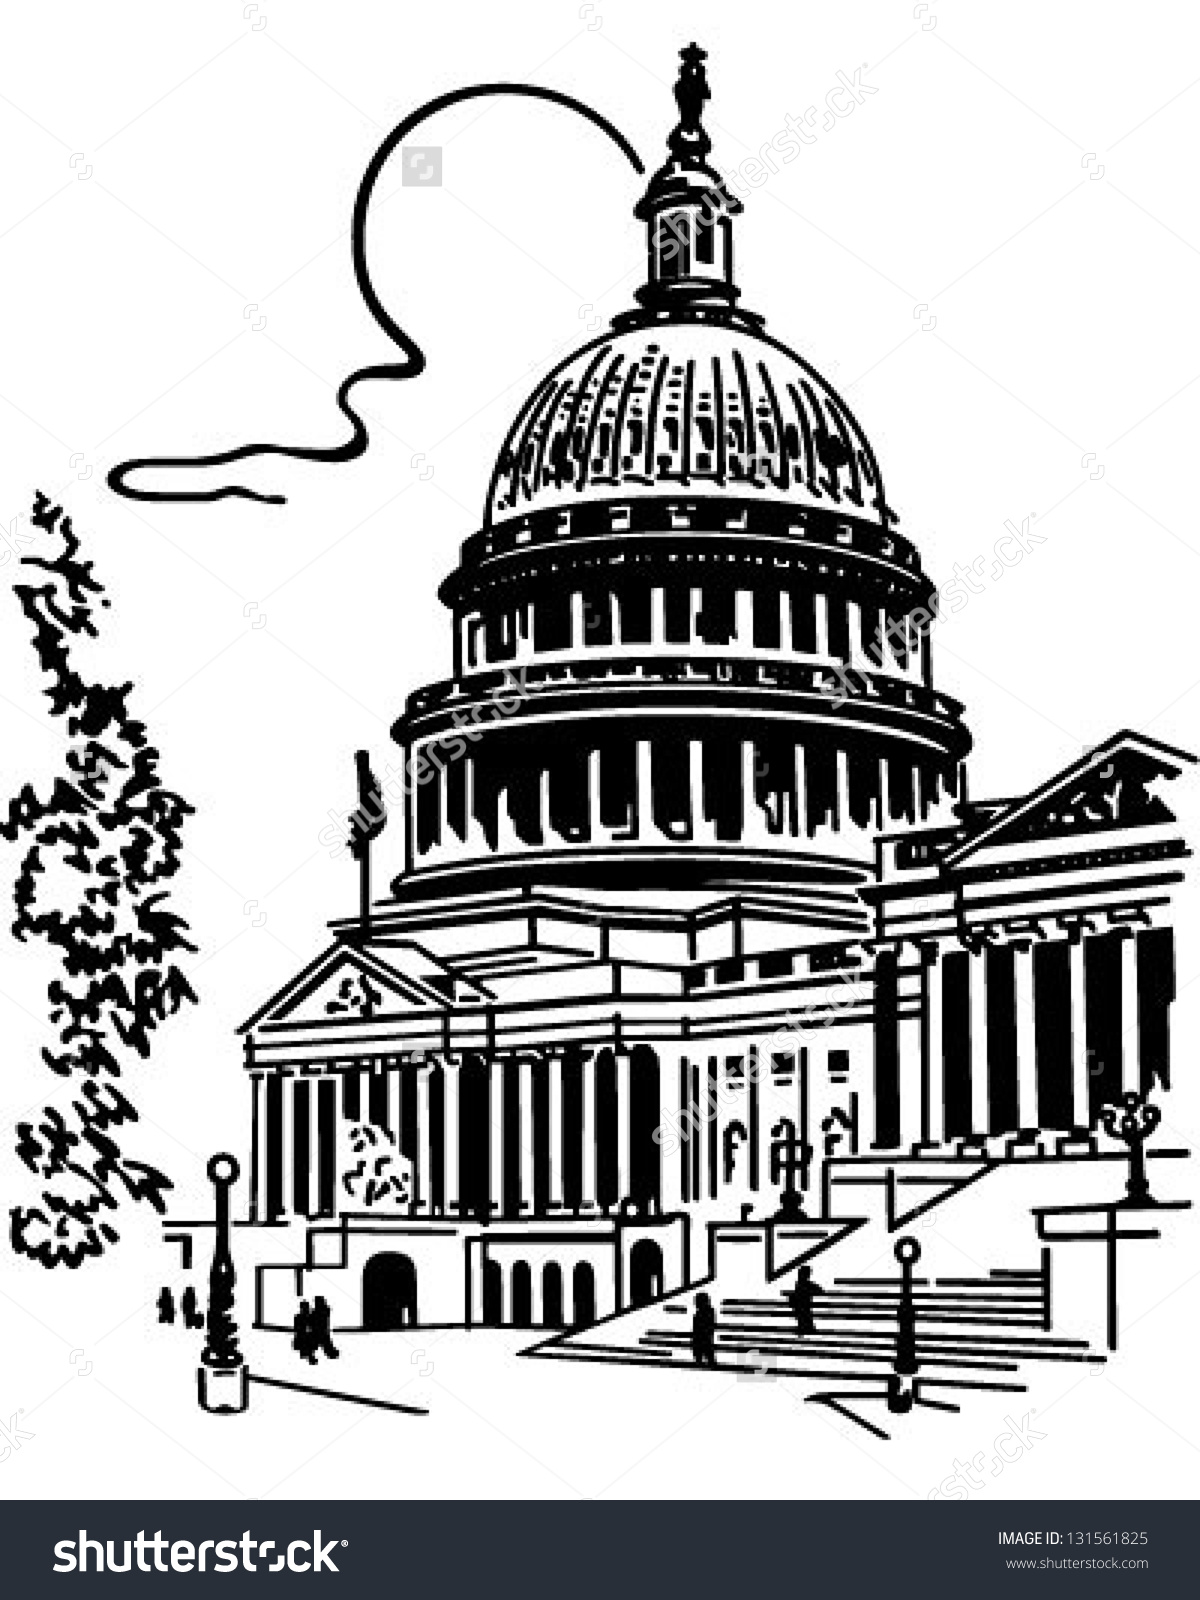 Us Capitol Building Retro Clip Art Stock Vector 131561825.